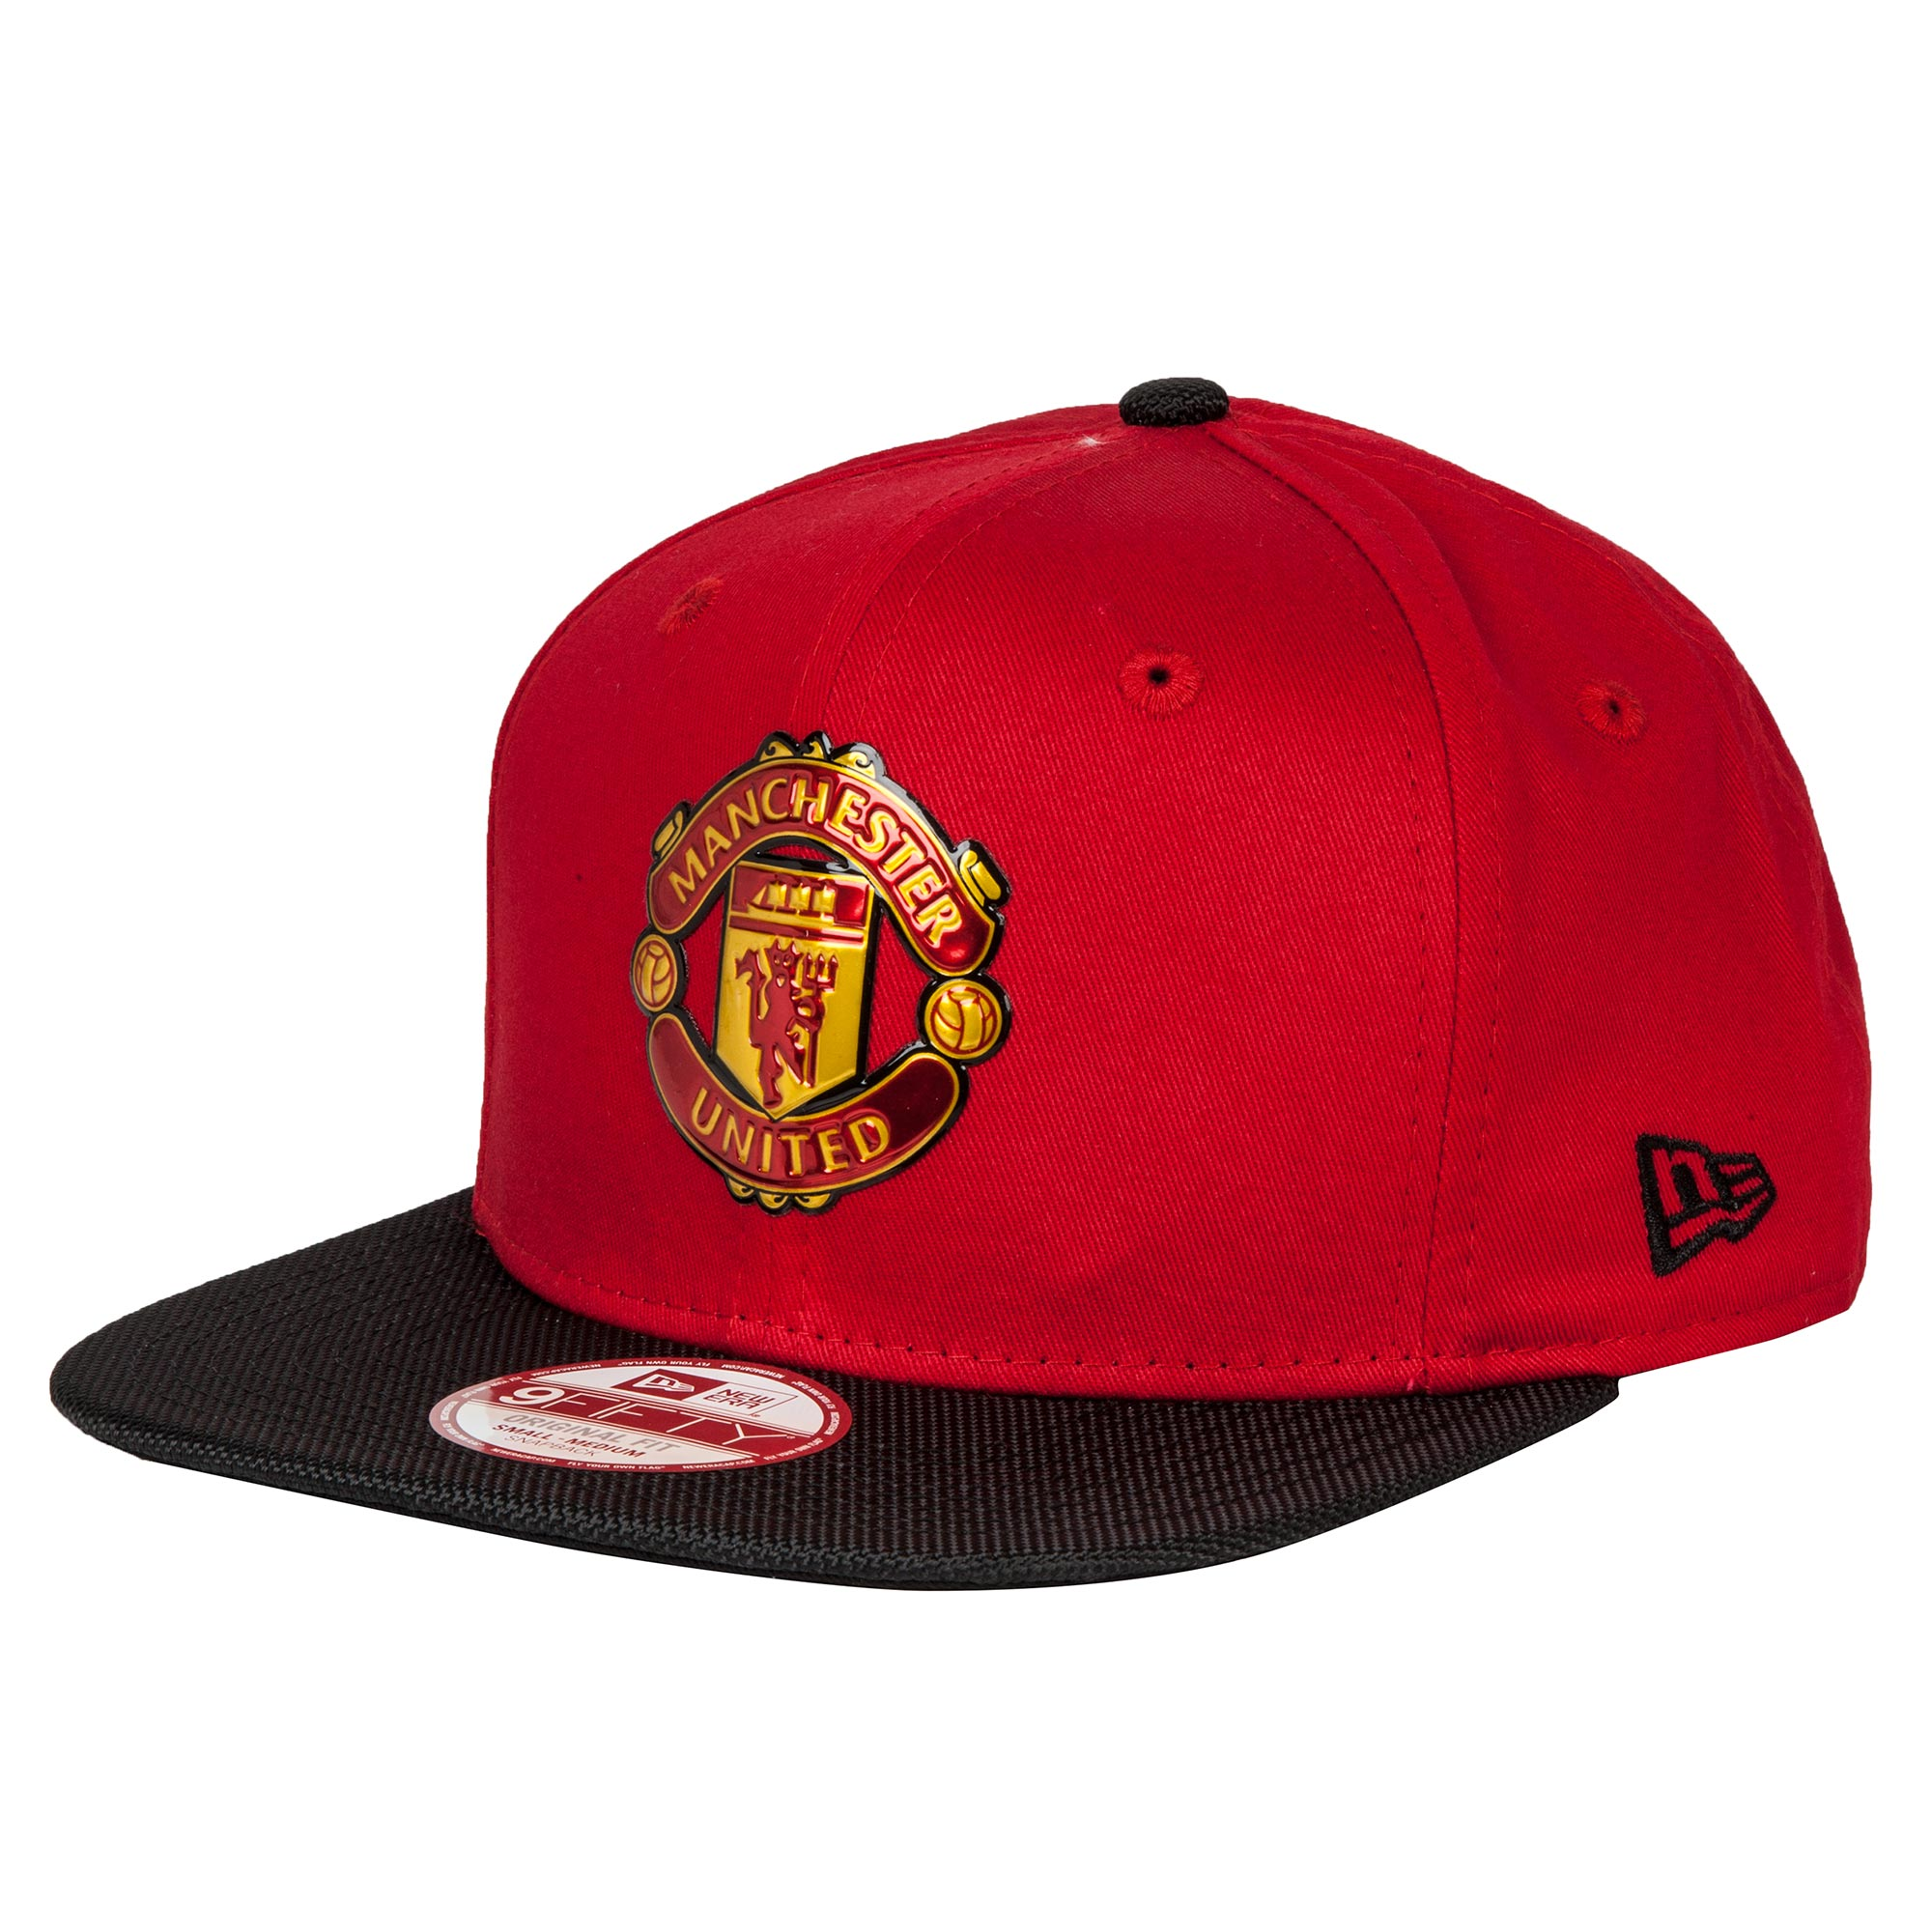 Manchester United New Era 9FIFTY Nylon - Snapback Cap - Red - Adult